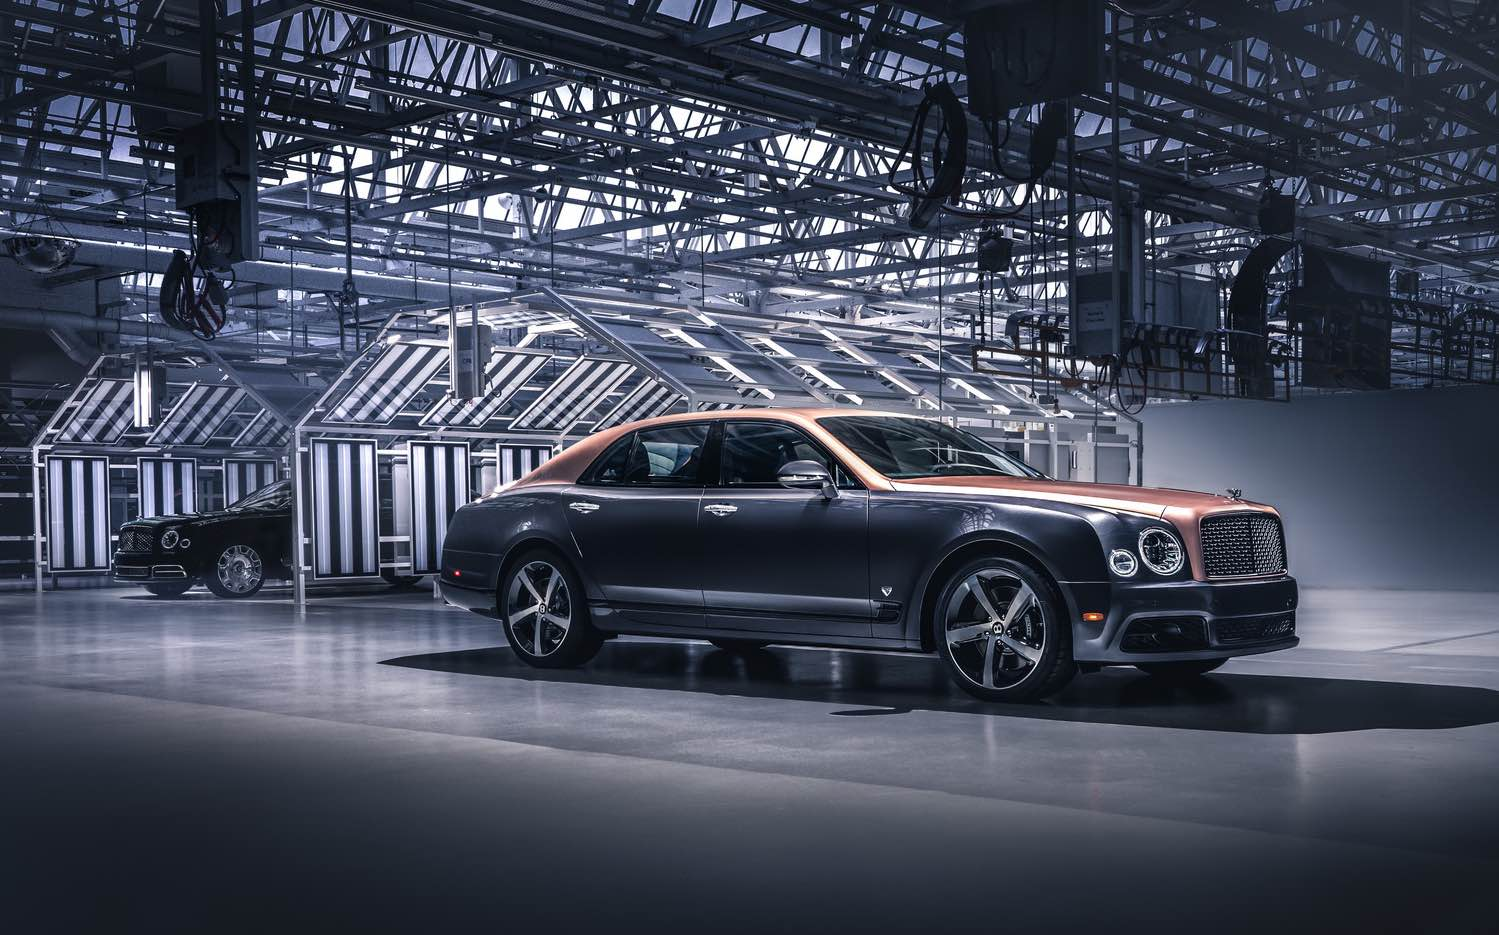 Bentley Mulsanne Speed 6.75 Edition: Inspirado por el ultra lujo